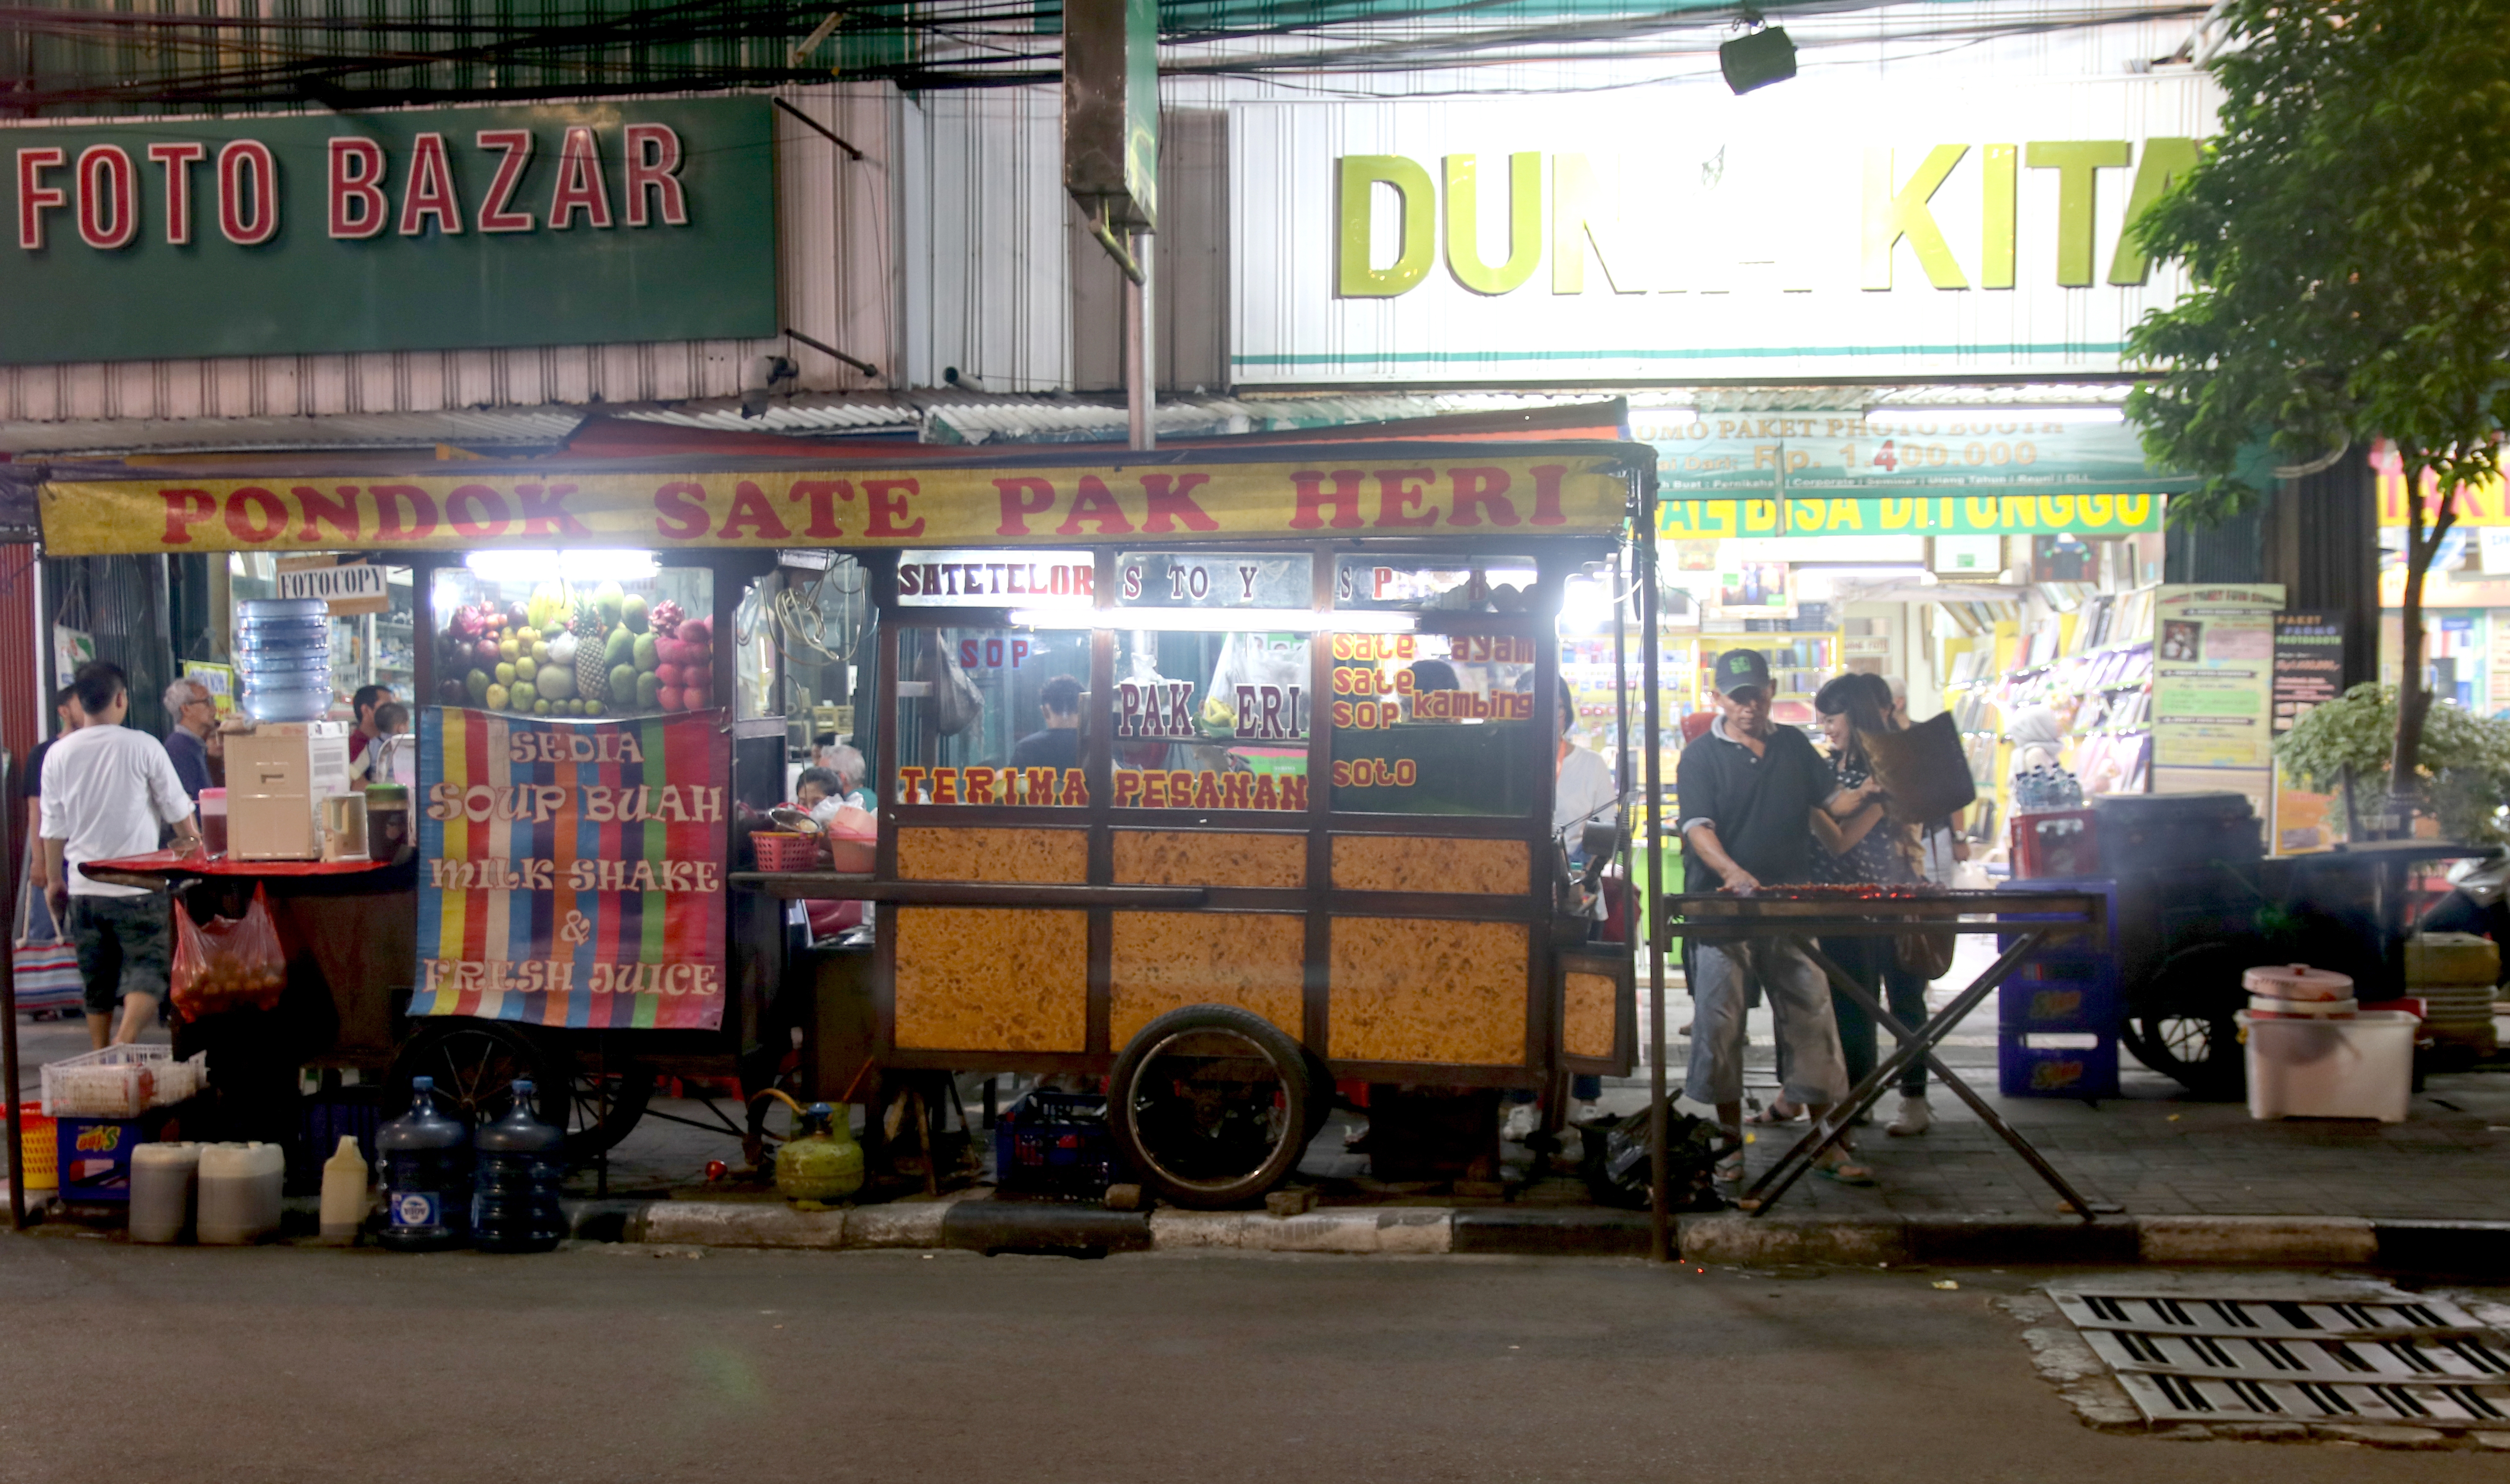 Walking tours in Jakarta: We teamed up with Jelajah Rasa to explore the National Museum and Library in Medan Merdeka and enjoy the delightful street food at Sabang